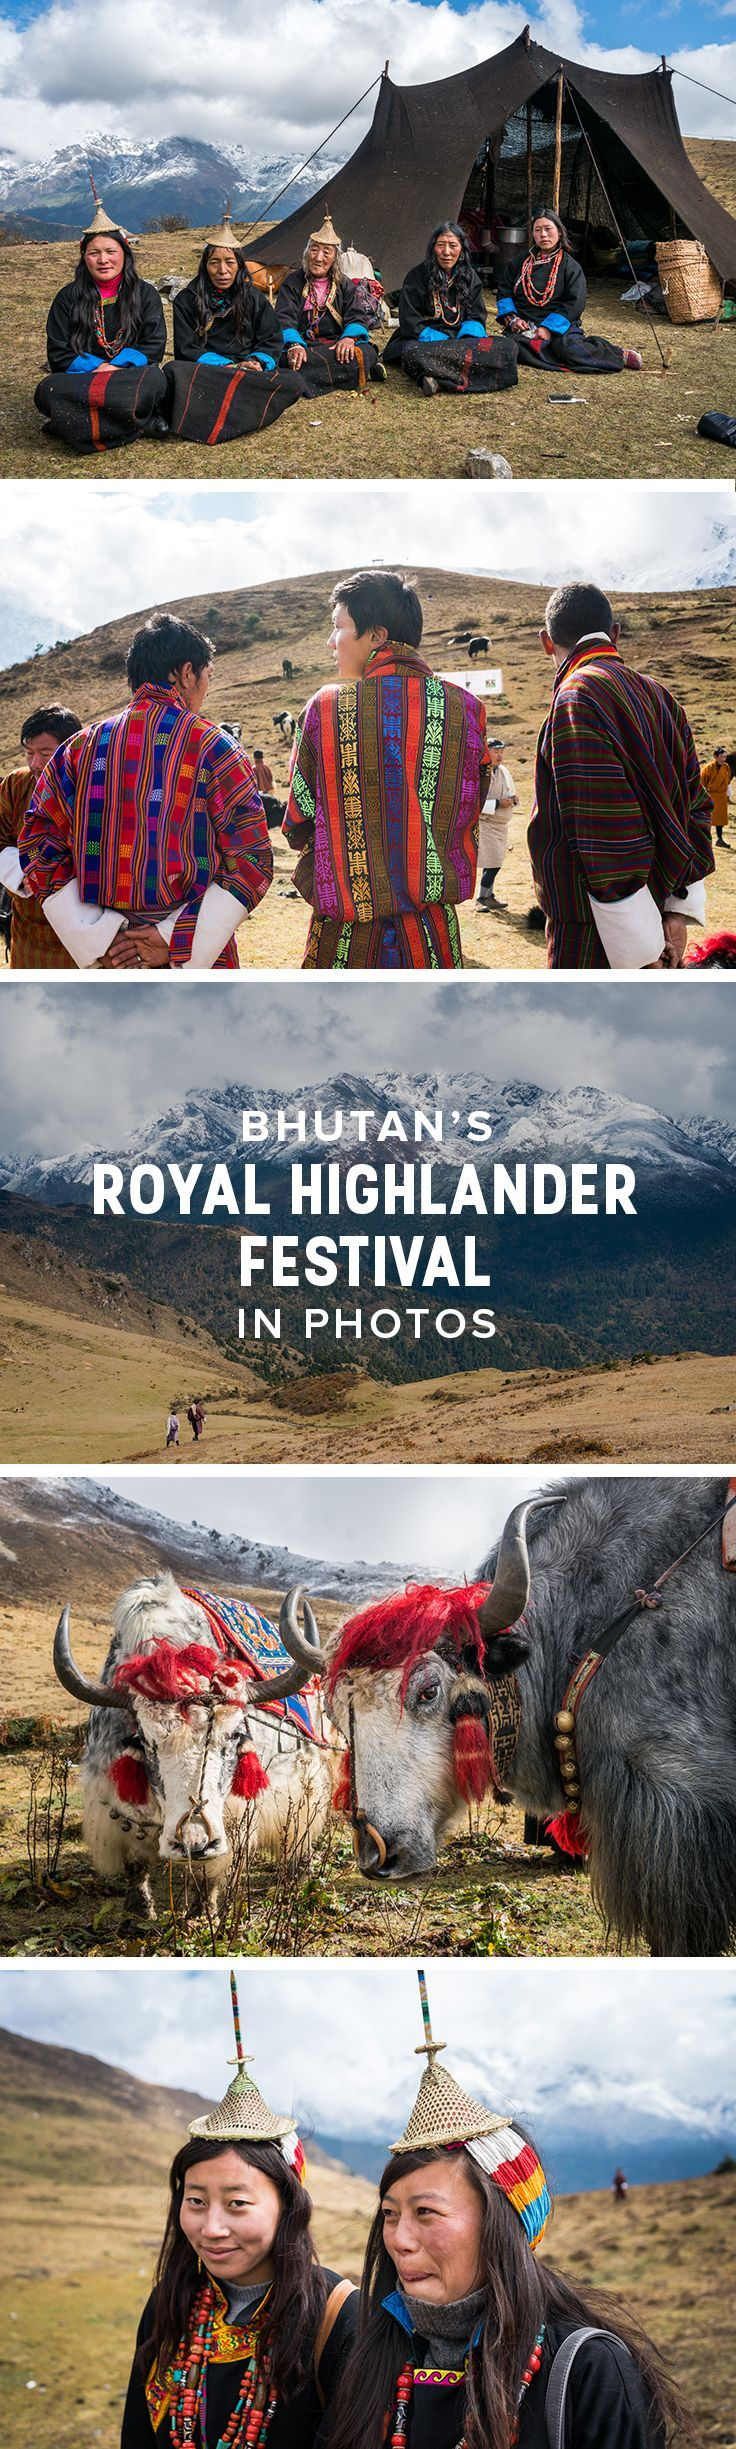 Want to get off the beaten track in Bhutan? Consider heading to the Royal Highlander Festival in Laya, the highest settlement in Bhutan. Accessible only via trekking, the two-day festival in October is a wild introduction to highlander Bhutanese culture. Click for a photo essay all about the 2017 Royal Highlander Festival, and a guide and tips to visiting future Royal Highlander Festivals in northern Bhutan.